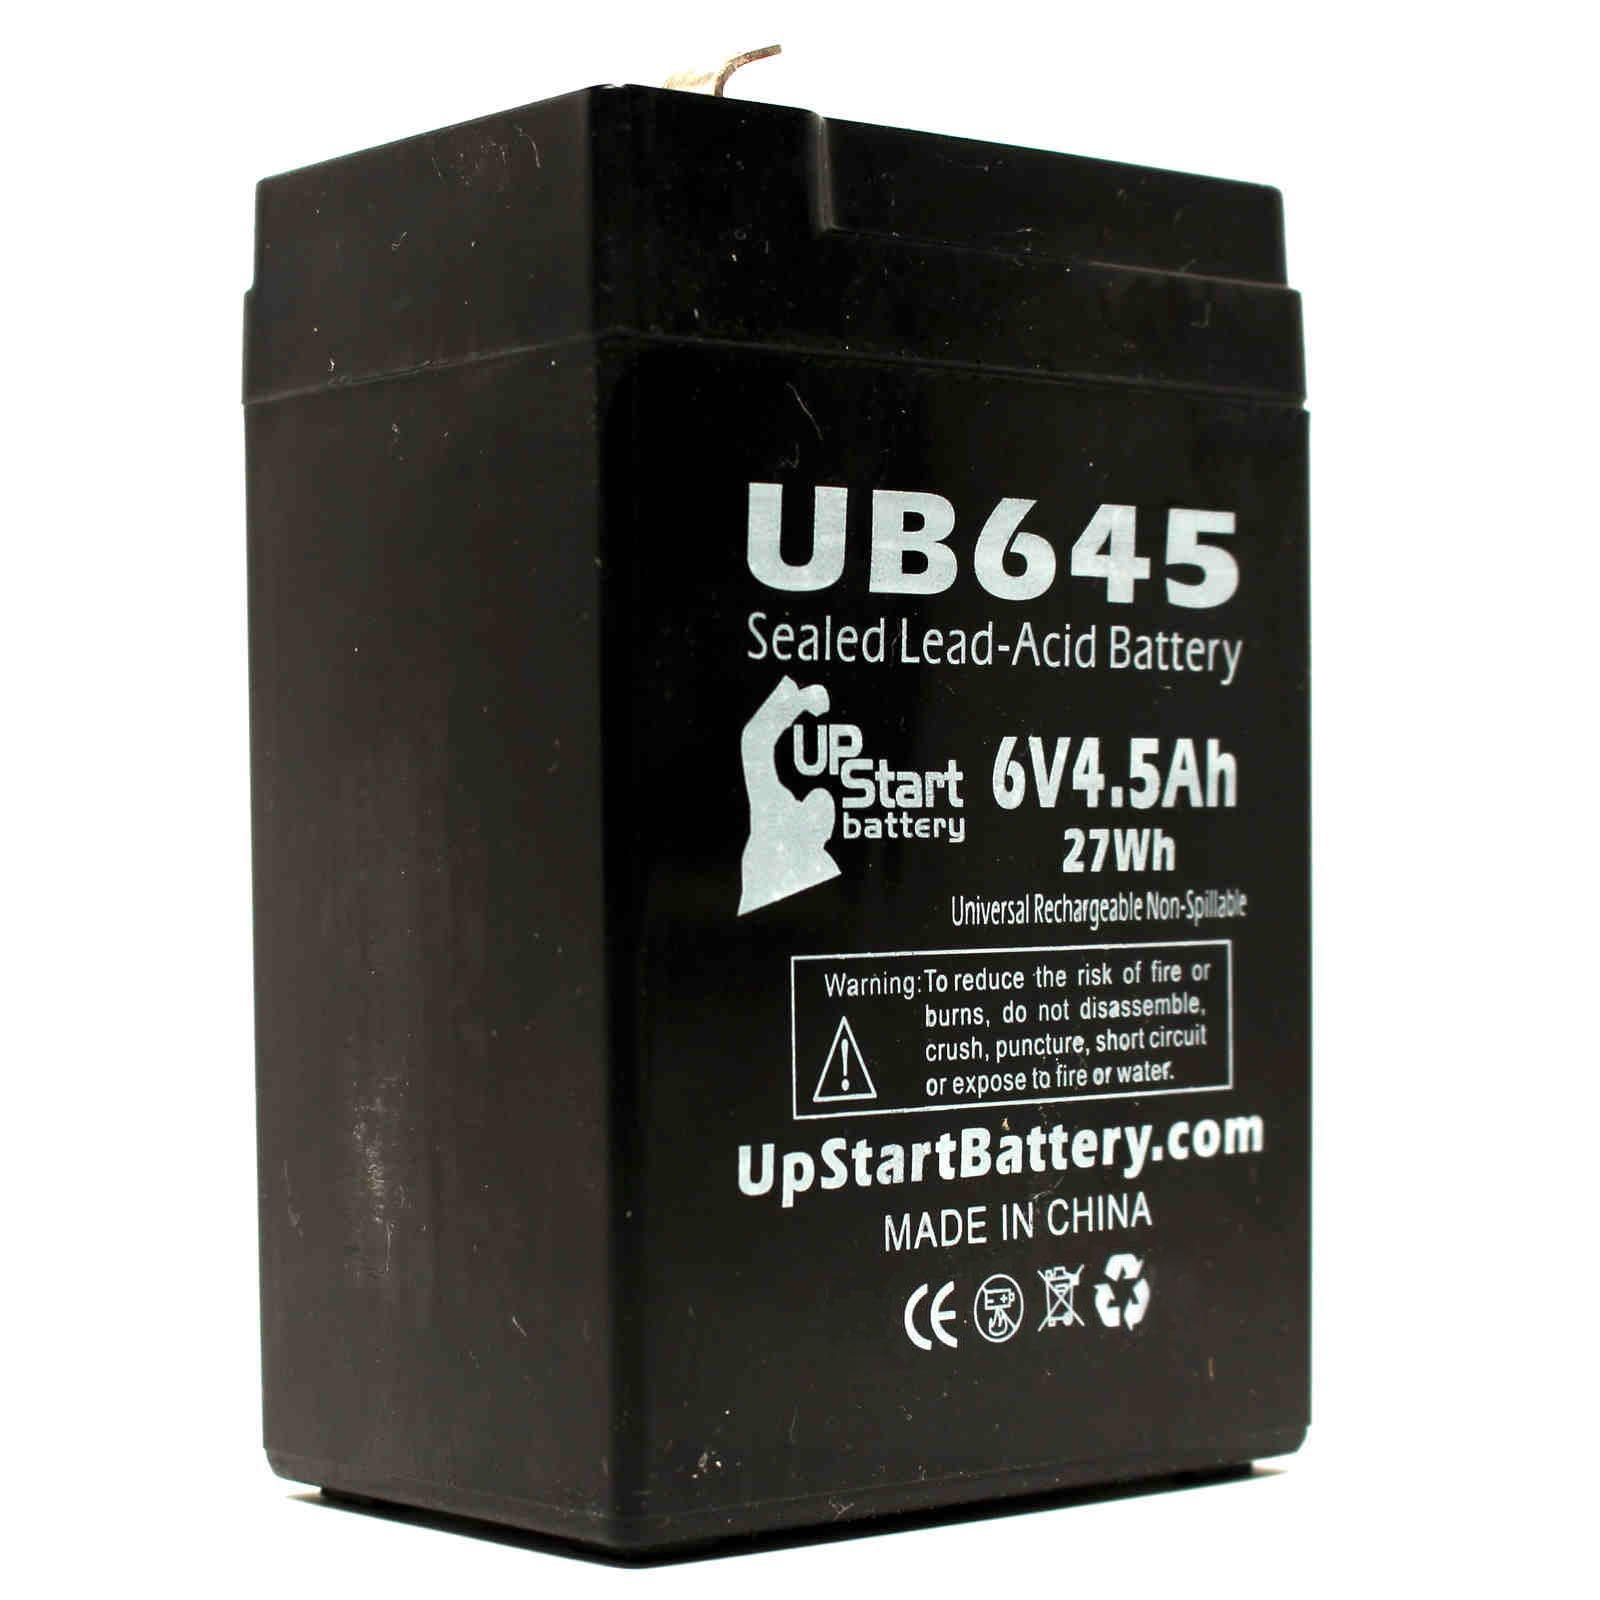 Zeus PC4.5-6F1 Battery Replacement - UB645 Universal Sealed Lead Acid Battery (6V, 4.5Ah, 4500mAh, F1 Terminal, AGM, SLA) - Includes TWO F1 to F2 Terminal Adapters - image 2 de 4